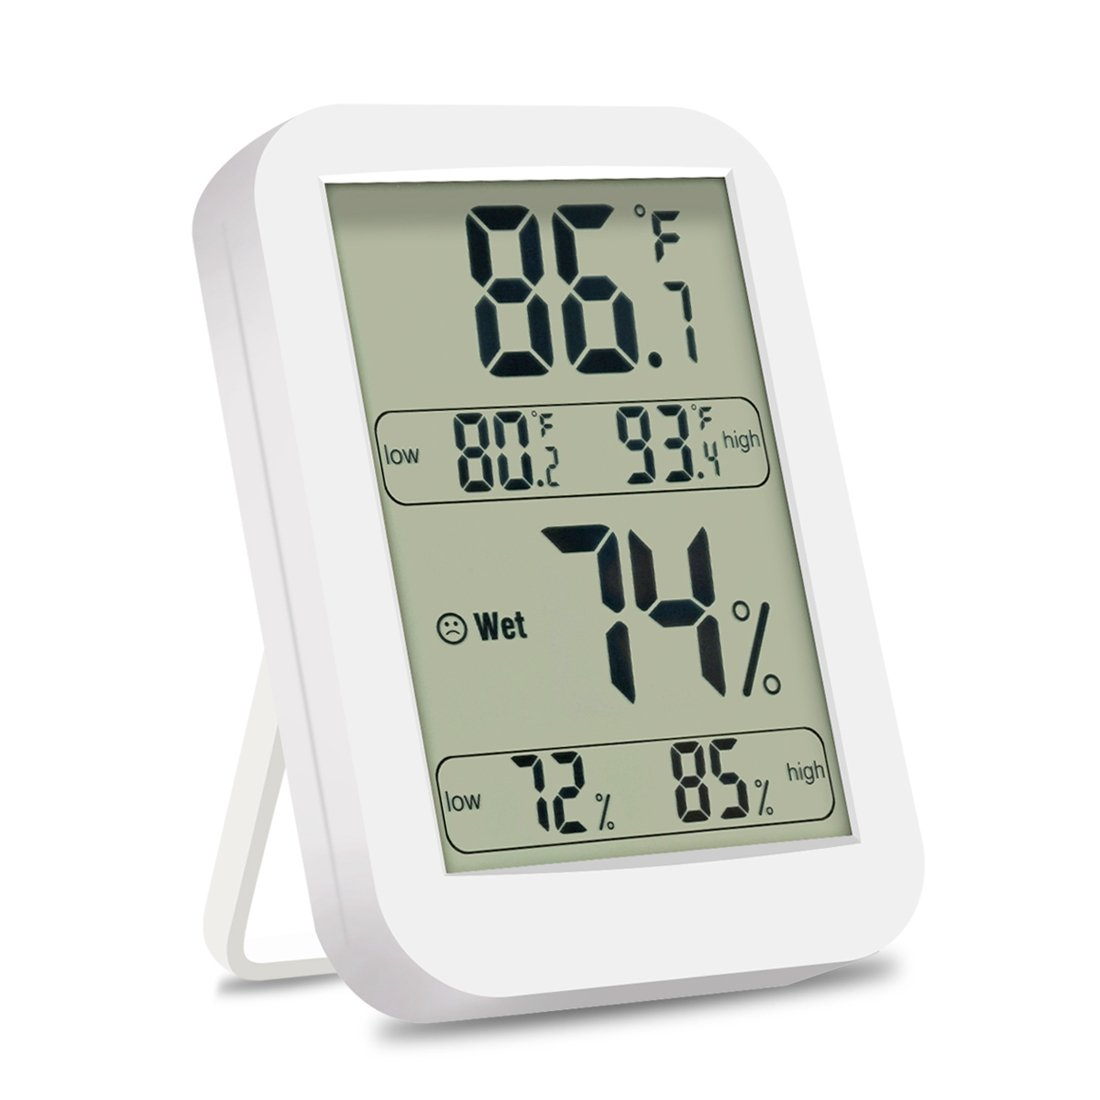 iFeng Indoor Thermometer Hygrometer, Digital Temperature Humidity Monitor Meter with LCD Screen ℃/℉ Switch for Home, Office, Kicthen, Warehouse, Greenhouse